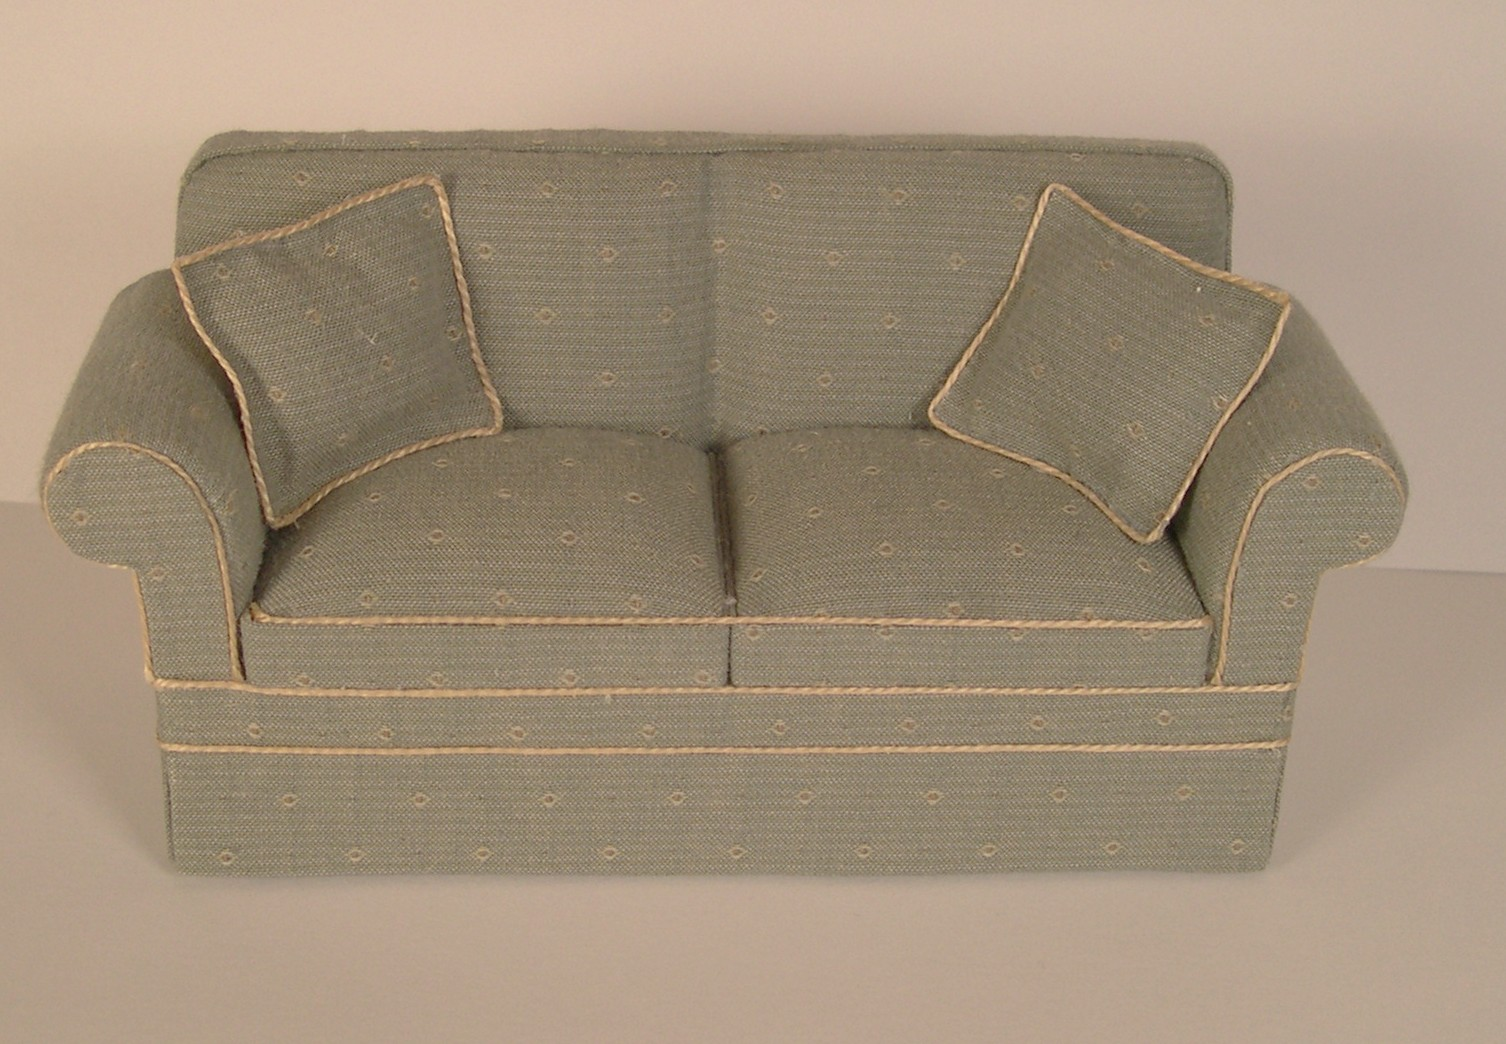 Decor Slipcovers For Sofas With Cushions Separate Sofa Covers With Separate Cushion Covers